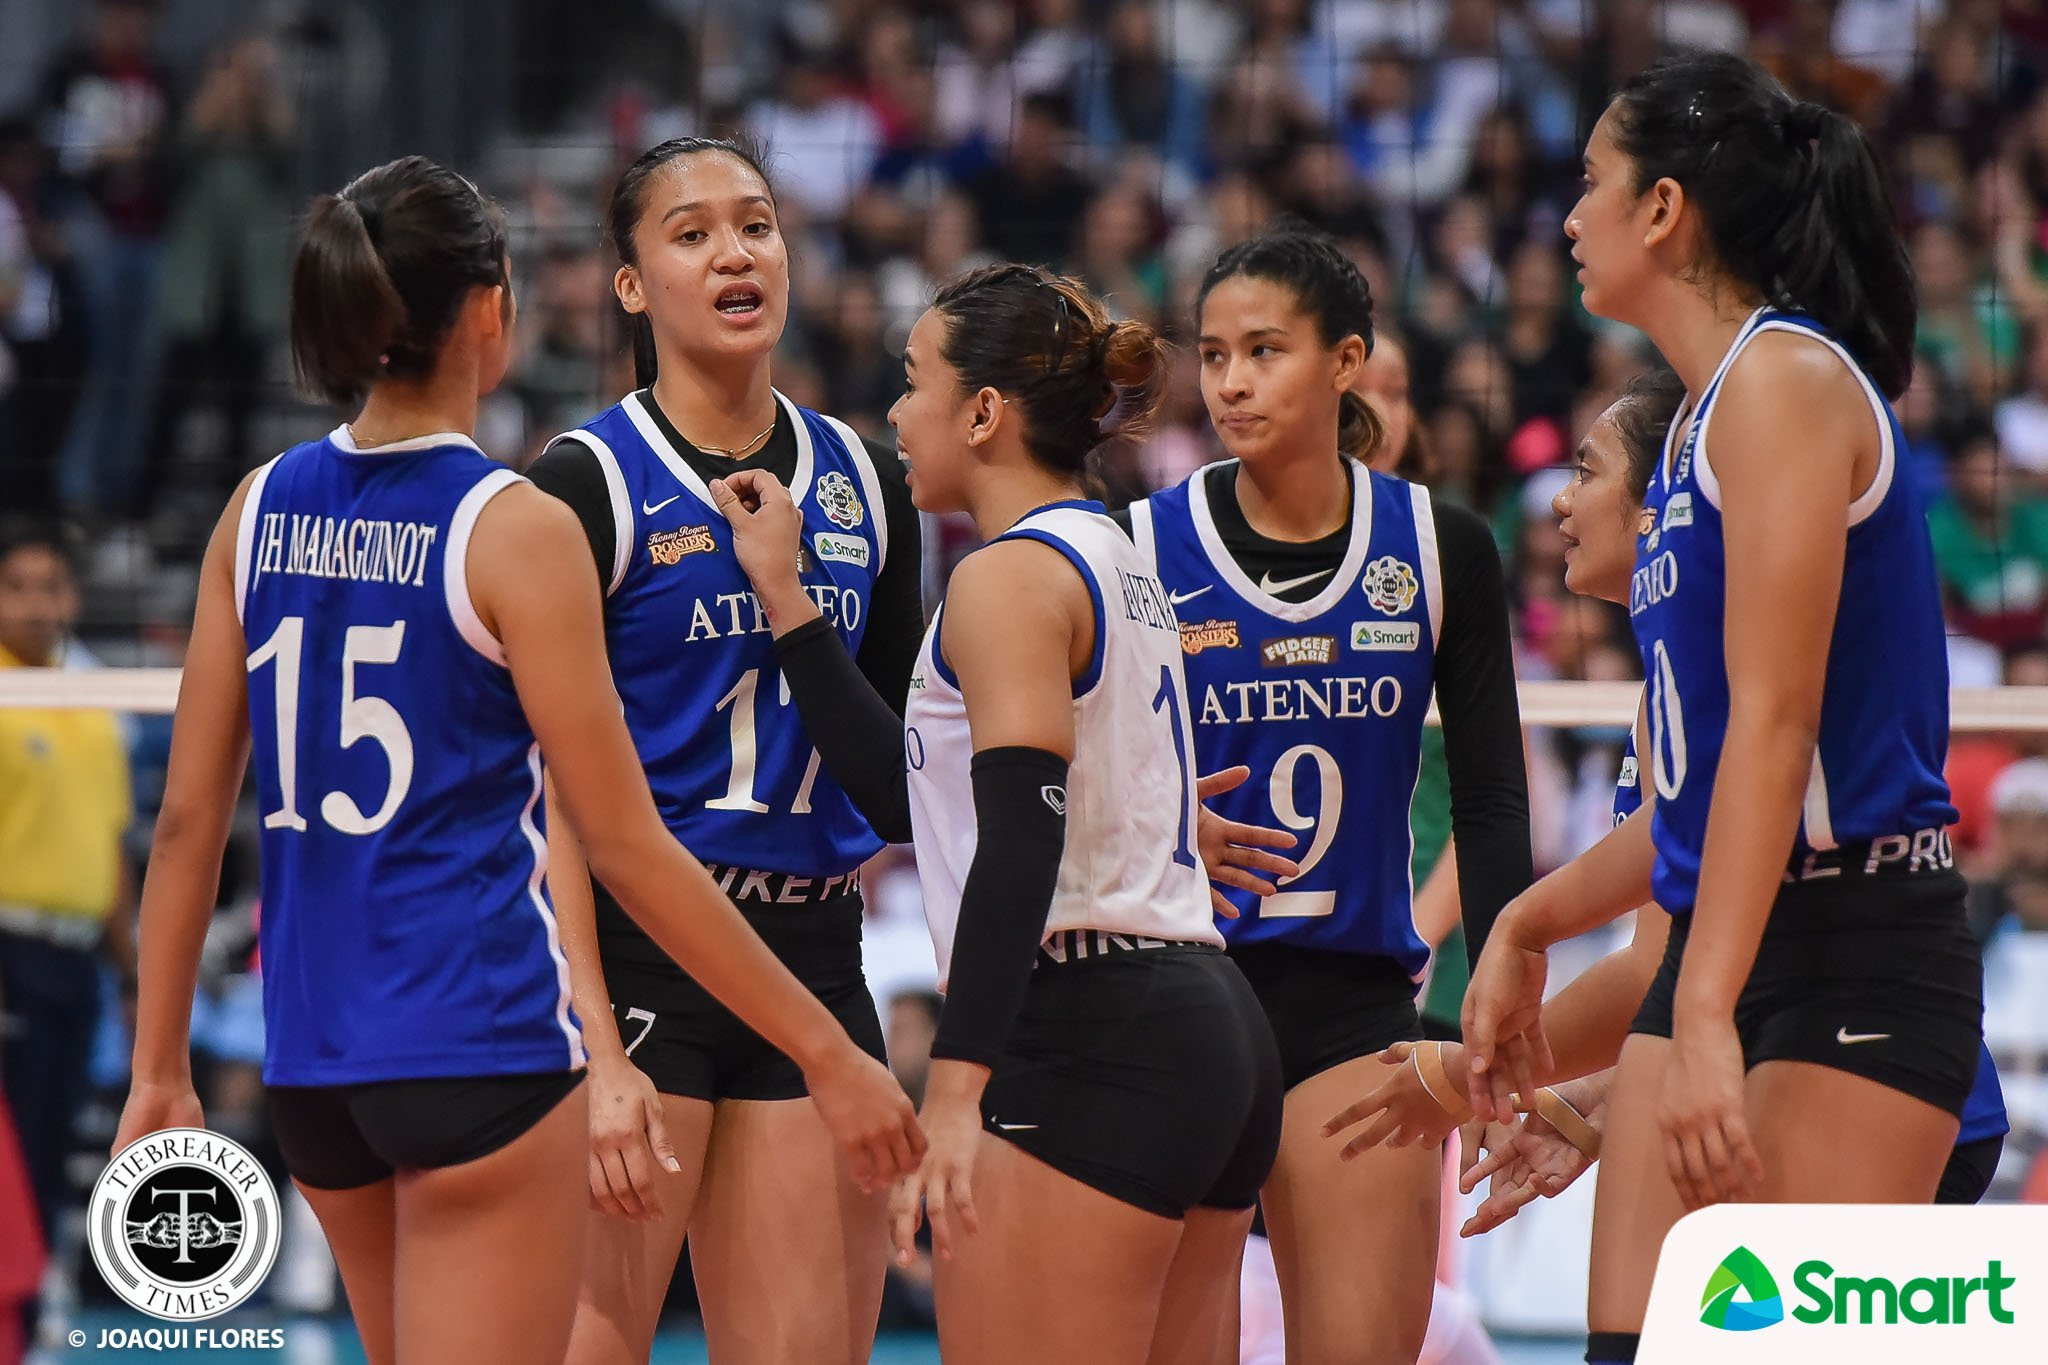 Tiebreaker Times Ateneo Lady Eagles morale down as Almadro braces for tough task ahead ADMU News UAAP Volleyball  UAAP Season 82 Women's Volleyball UAAP Season 82 Oliver Almadro Ateneo Women's Volleyball